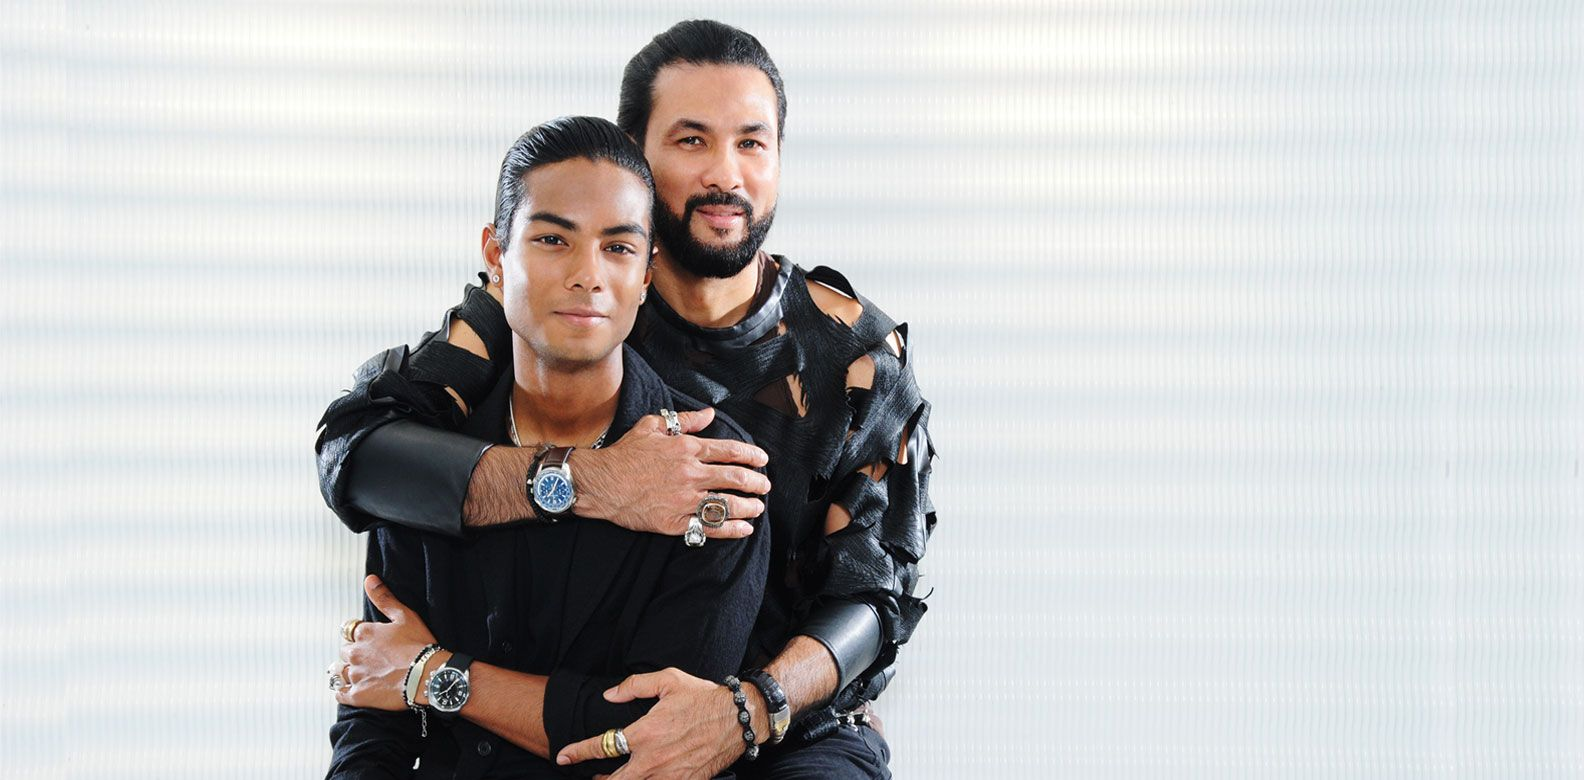 A Stitch In Time With Dato' Sri Bernard Chandran and Tanestrran Lournard Chandran